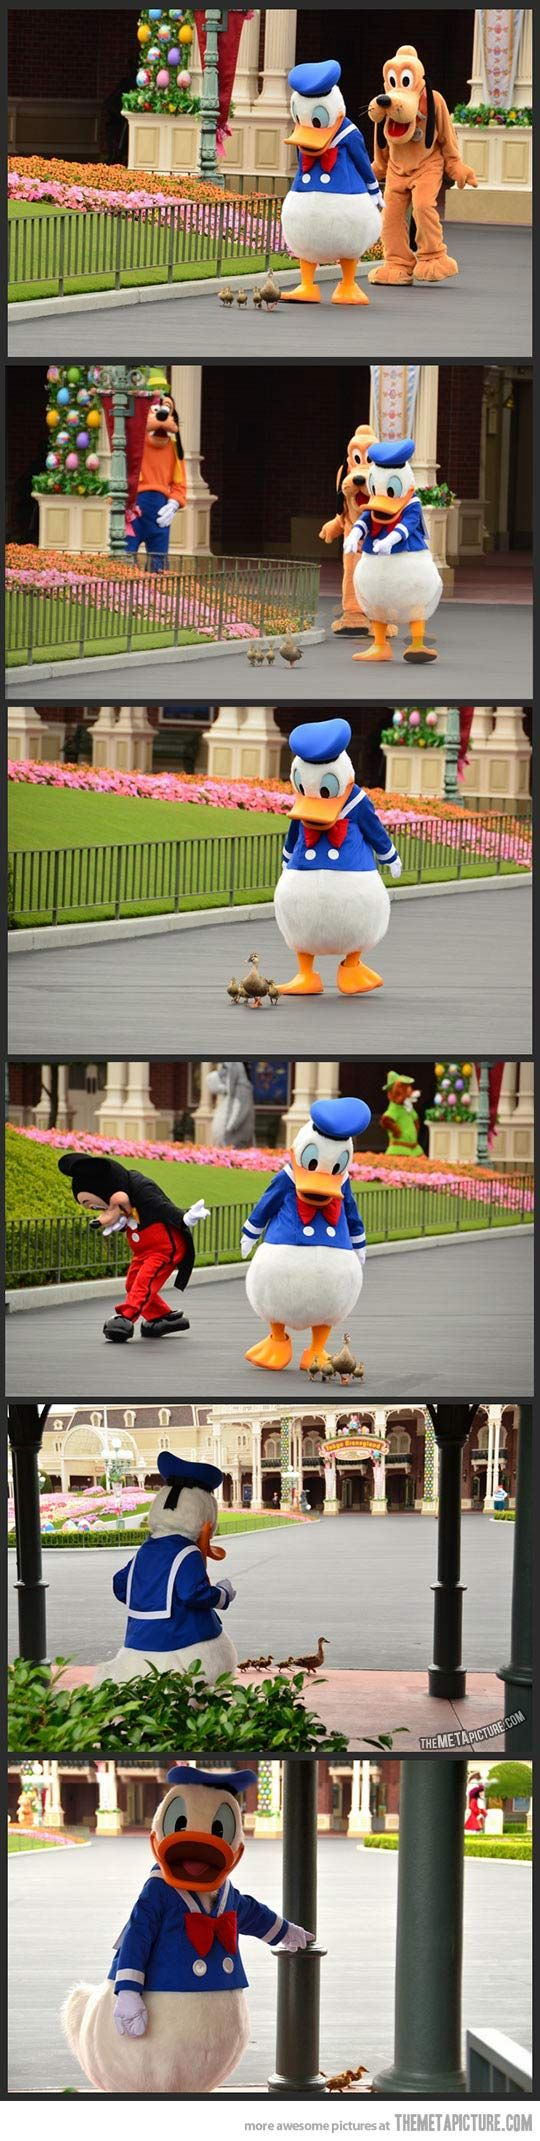 Donald following ducks. It's just adorable